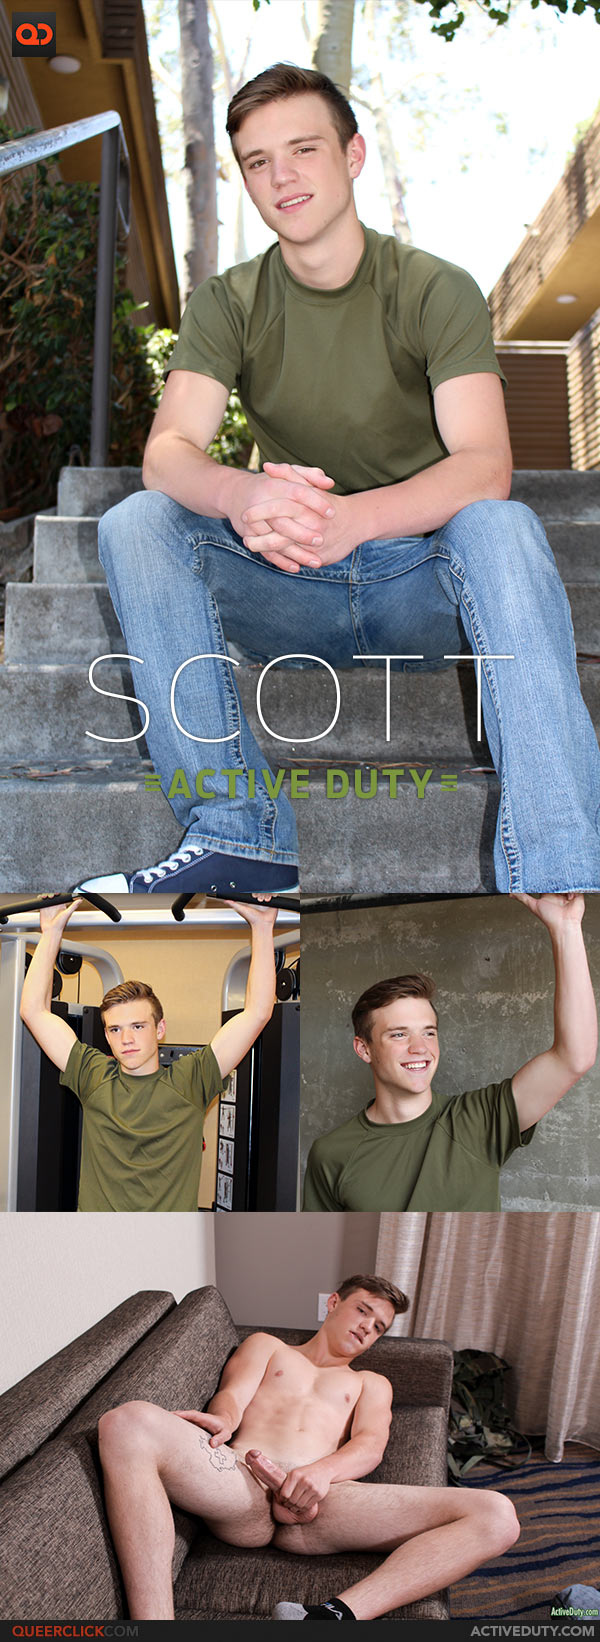 Active Duty: Scott